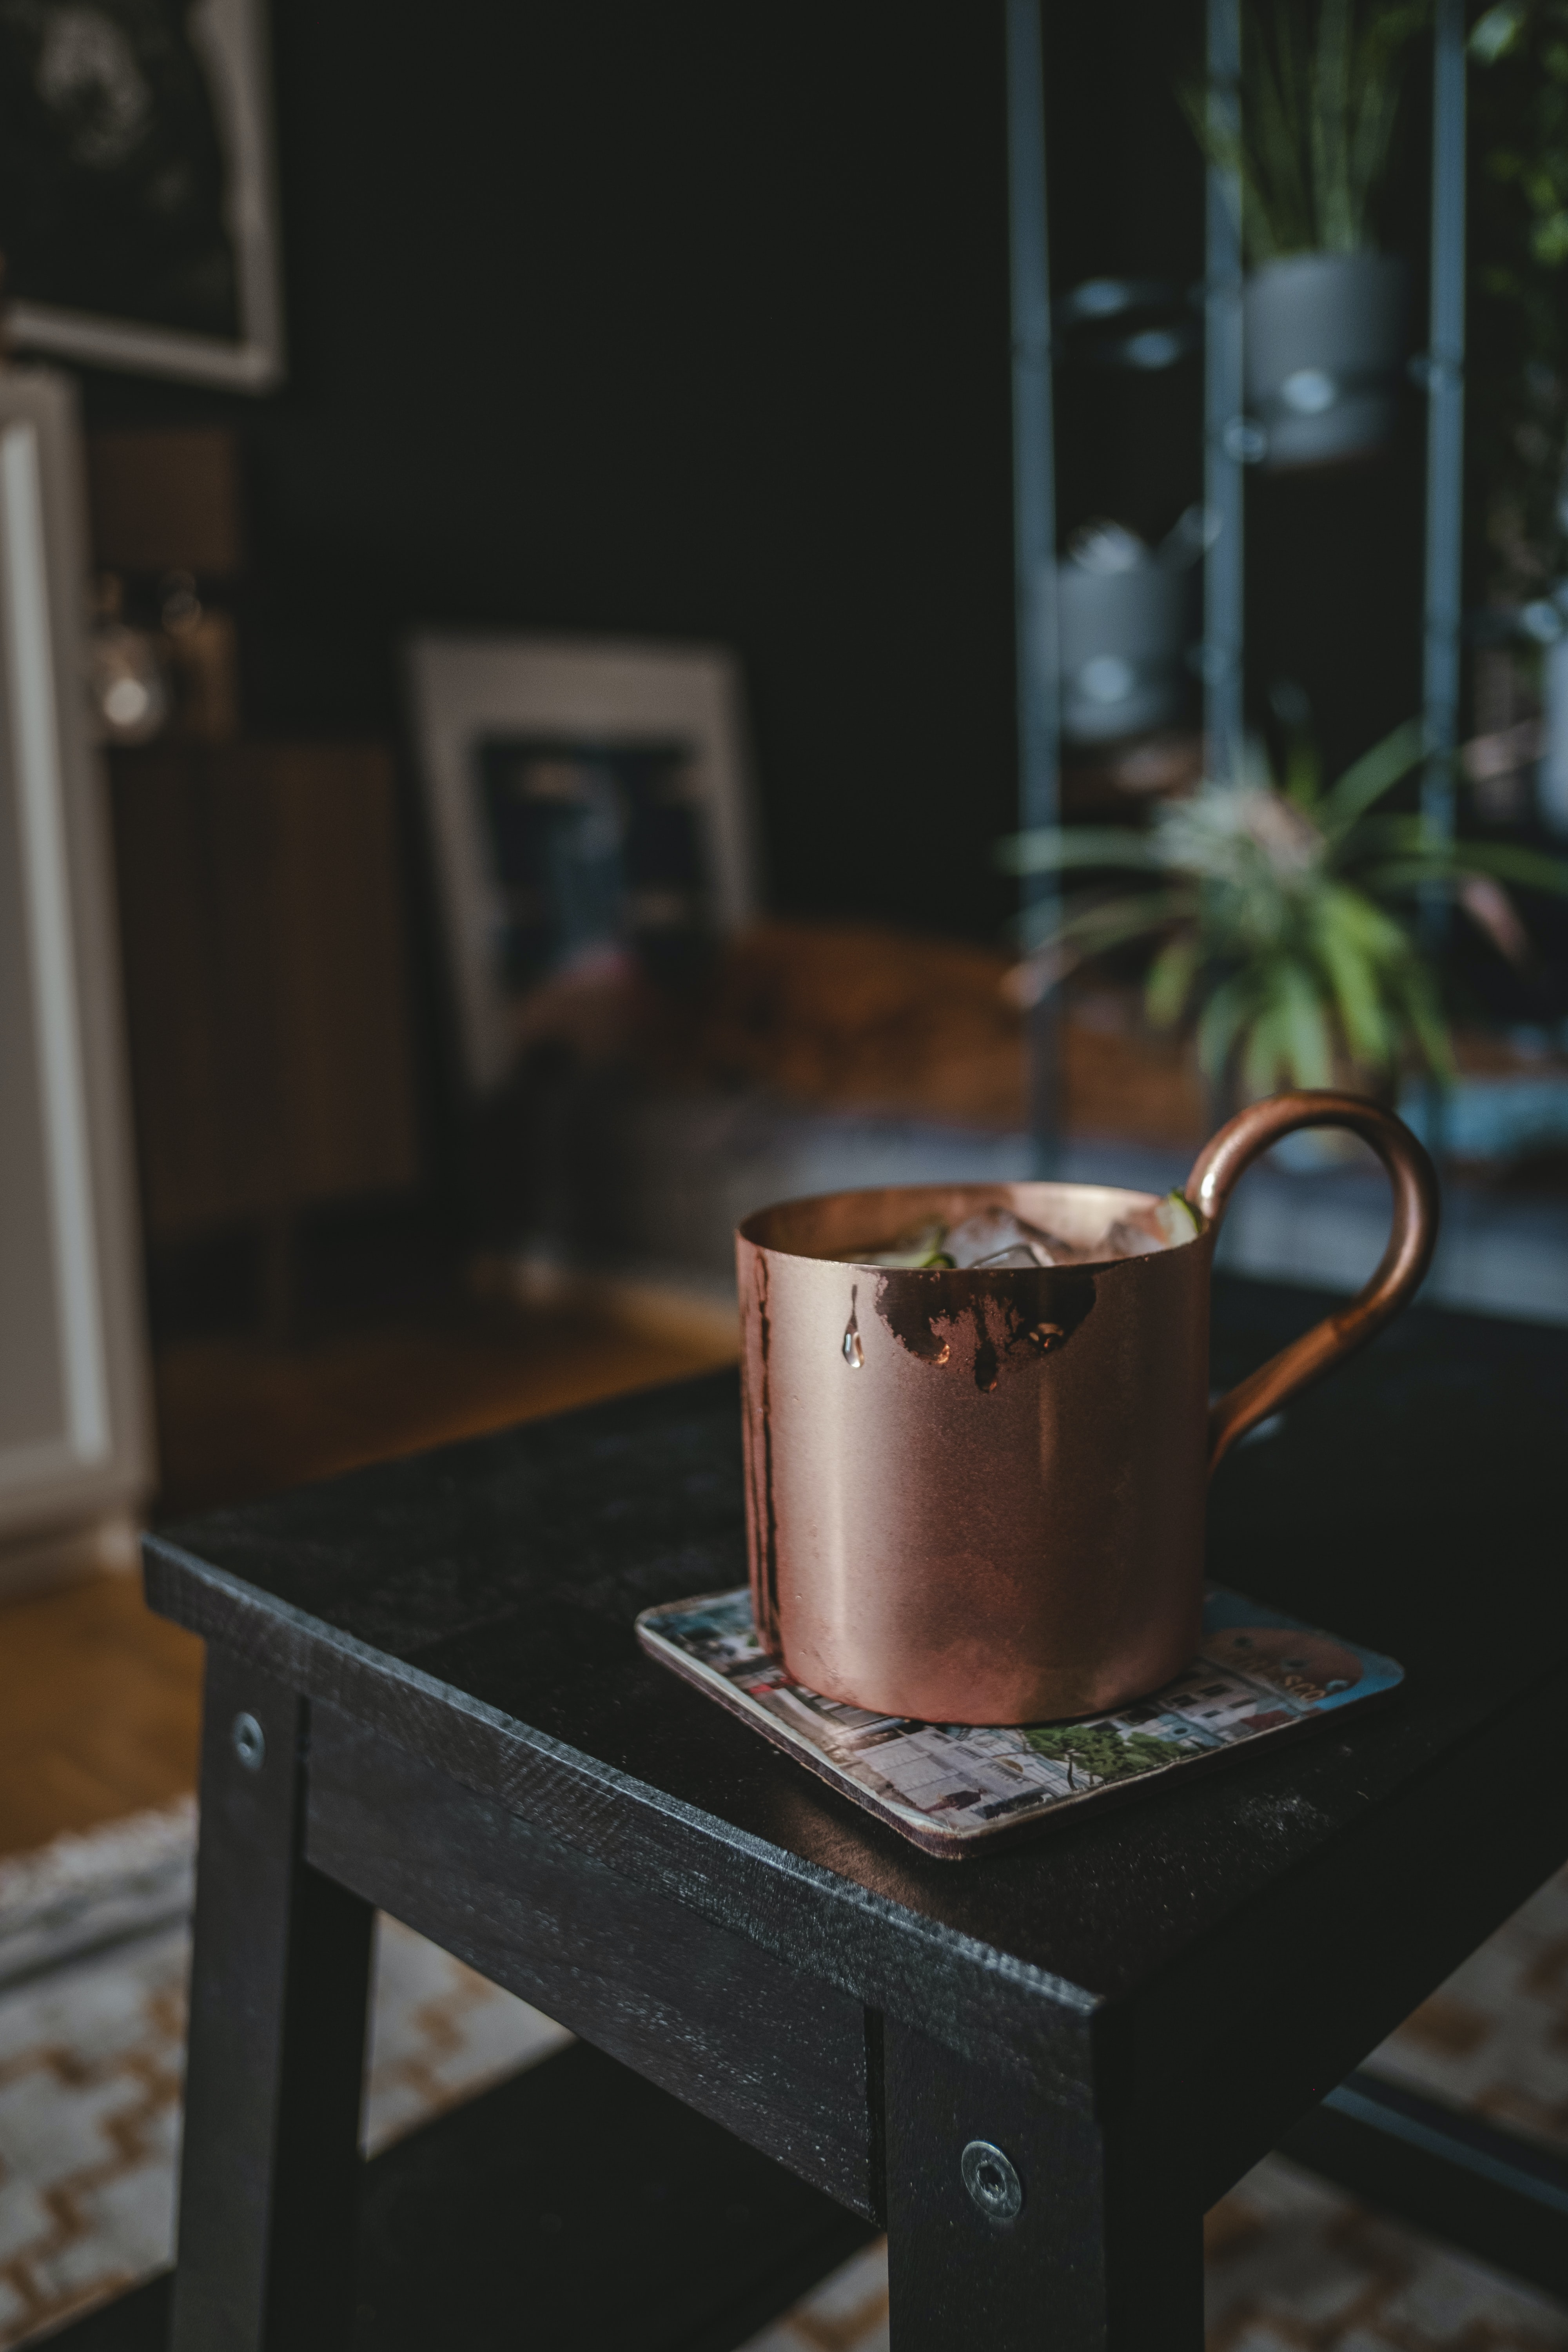 copper mug on stool chair